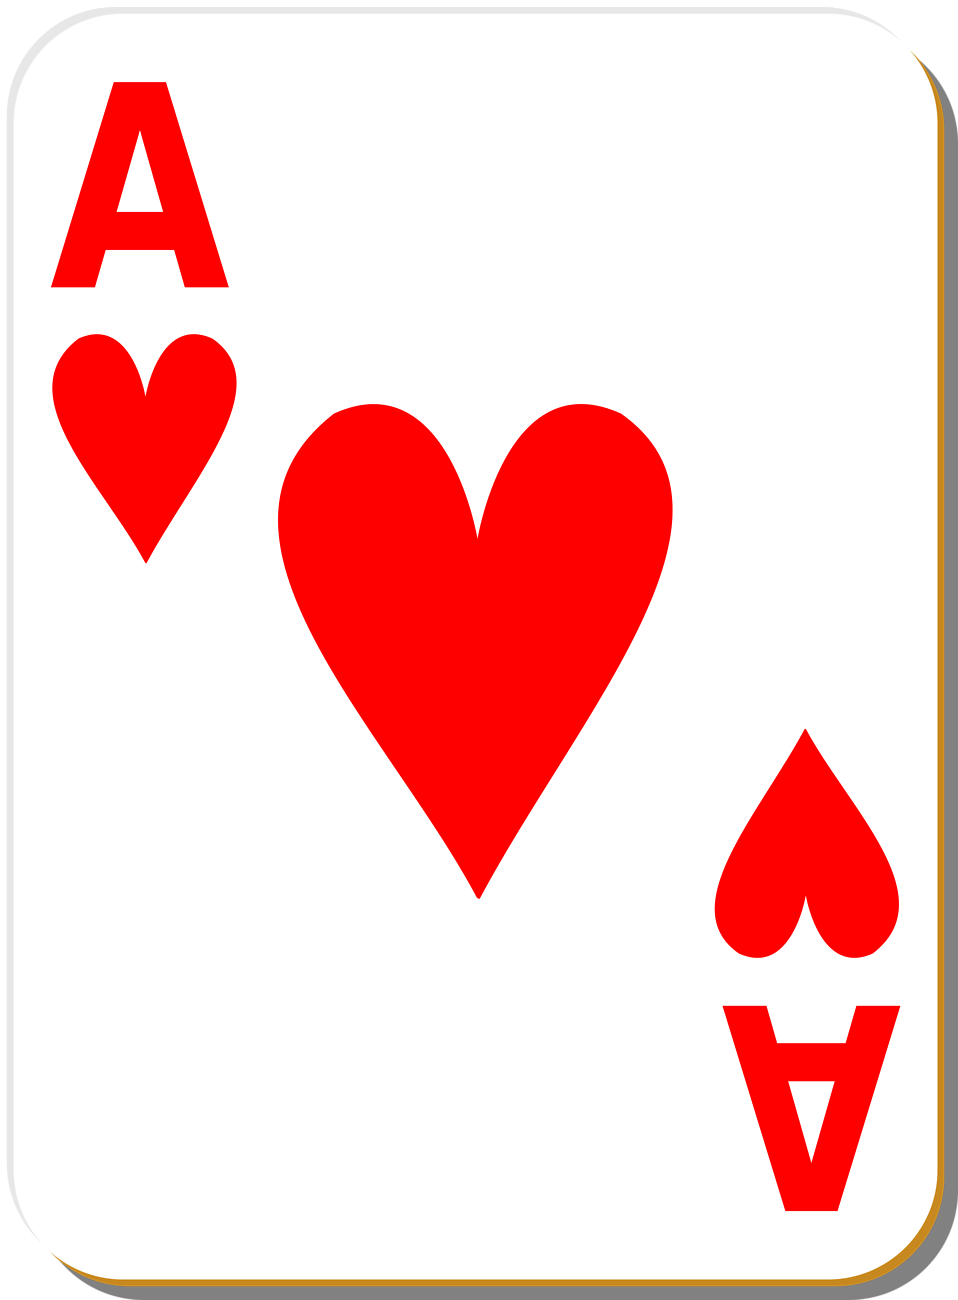 Illustration of an Ace of Hearts playing card : Free Stock Photo